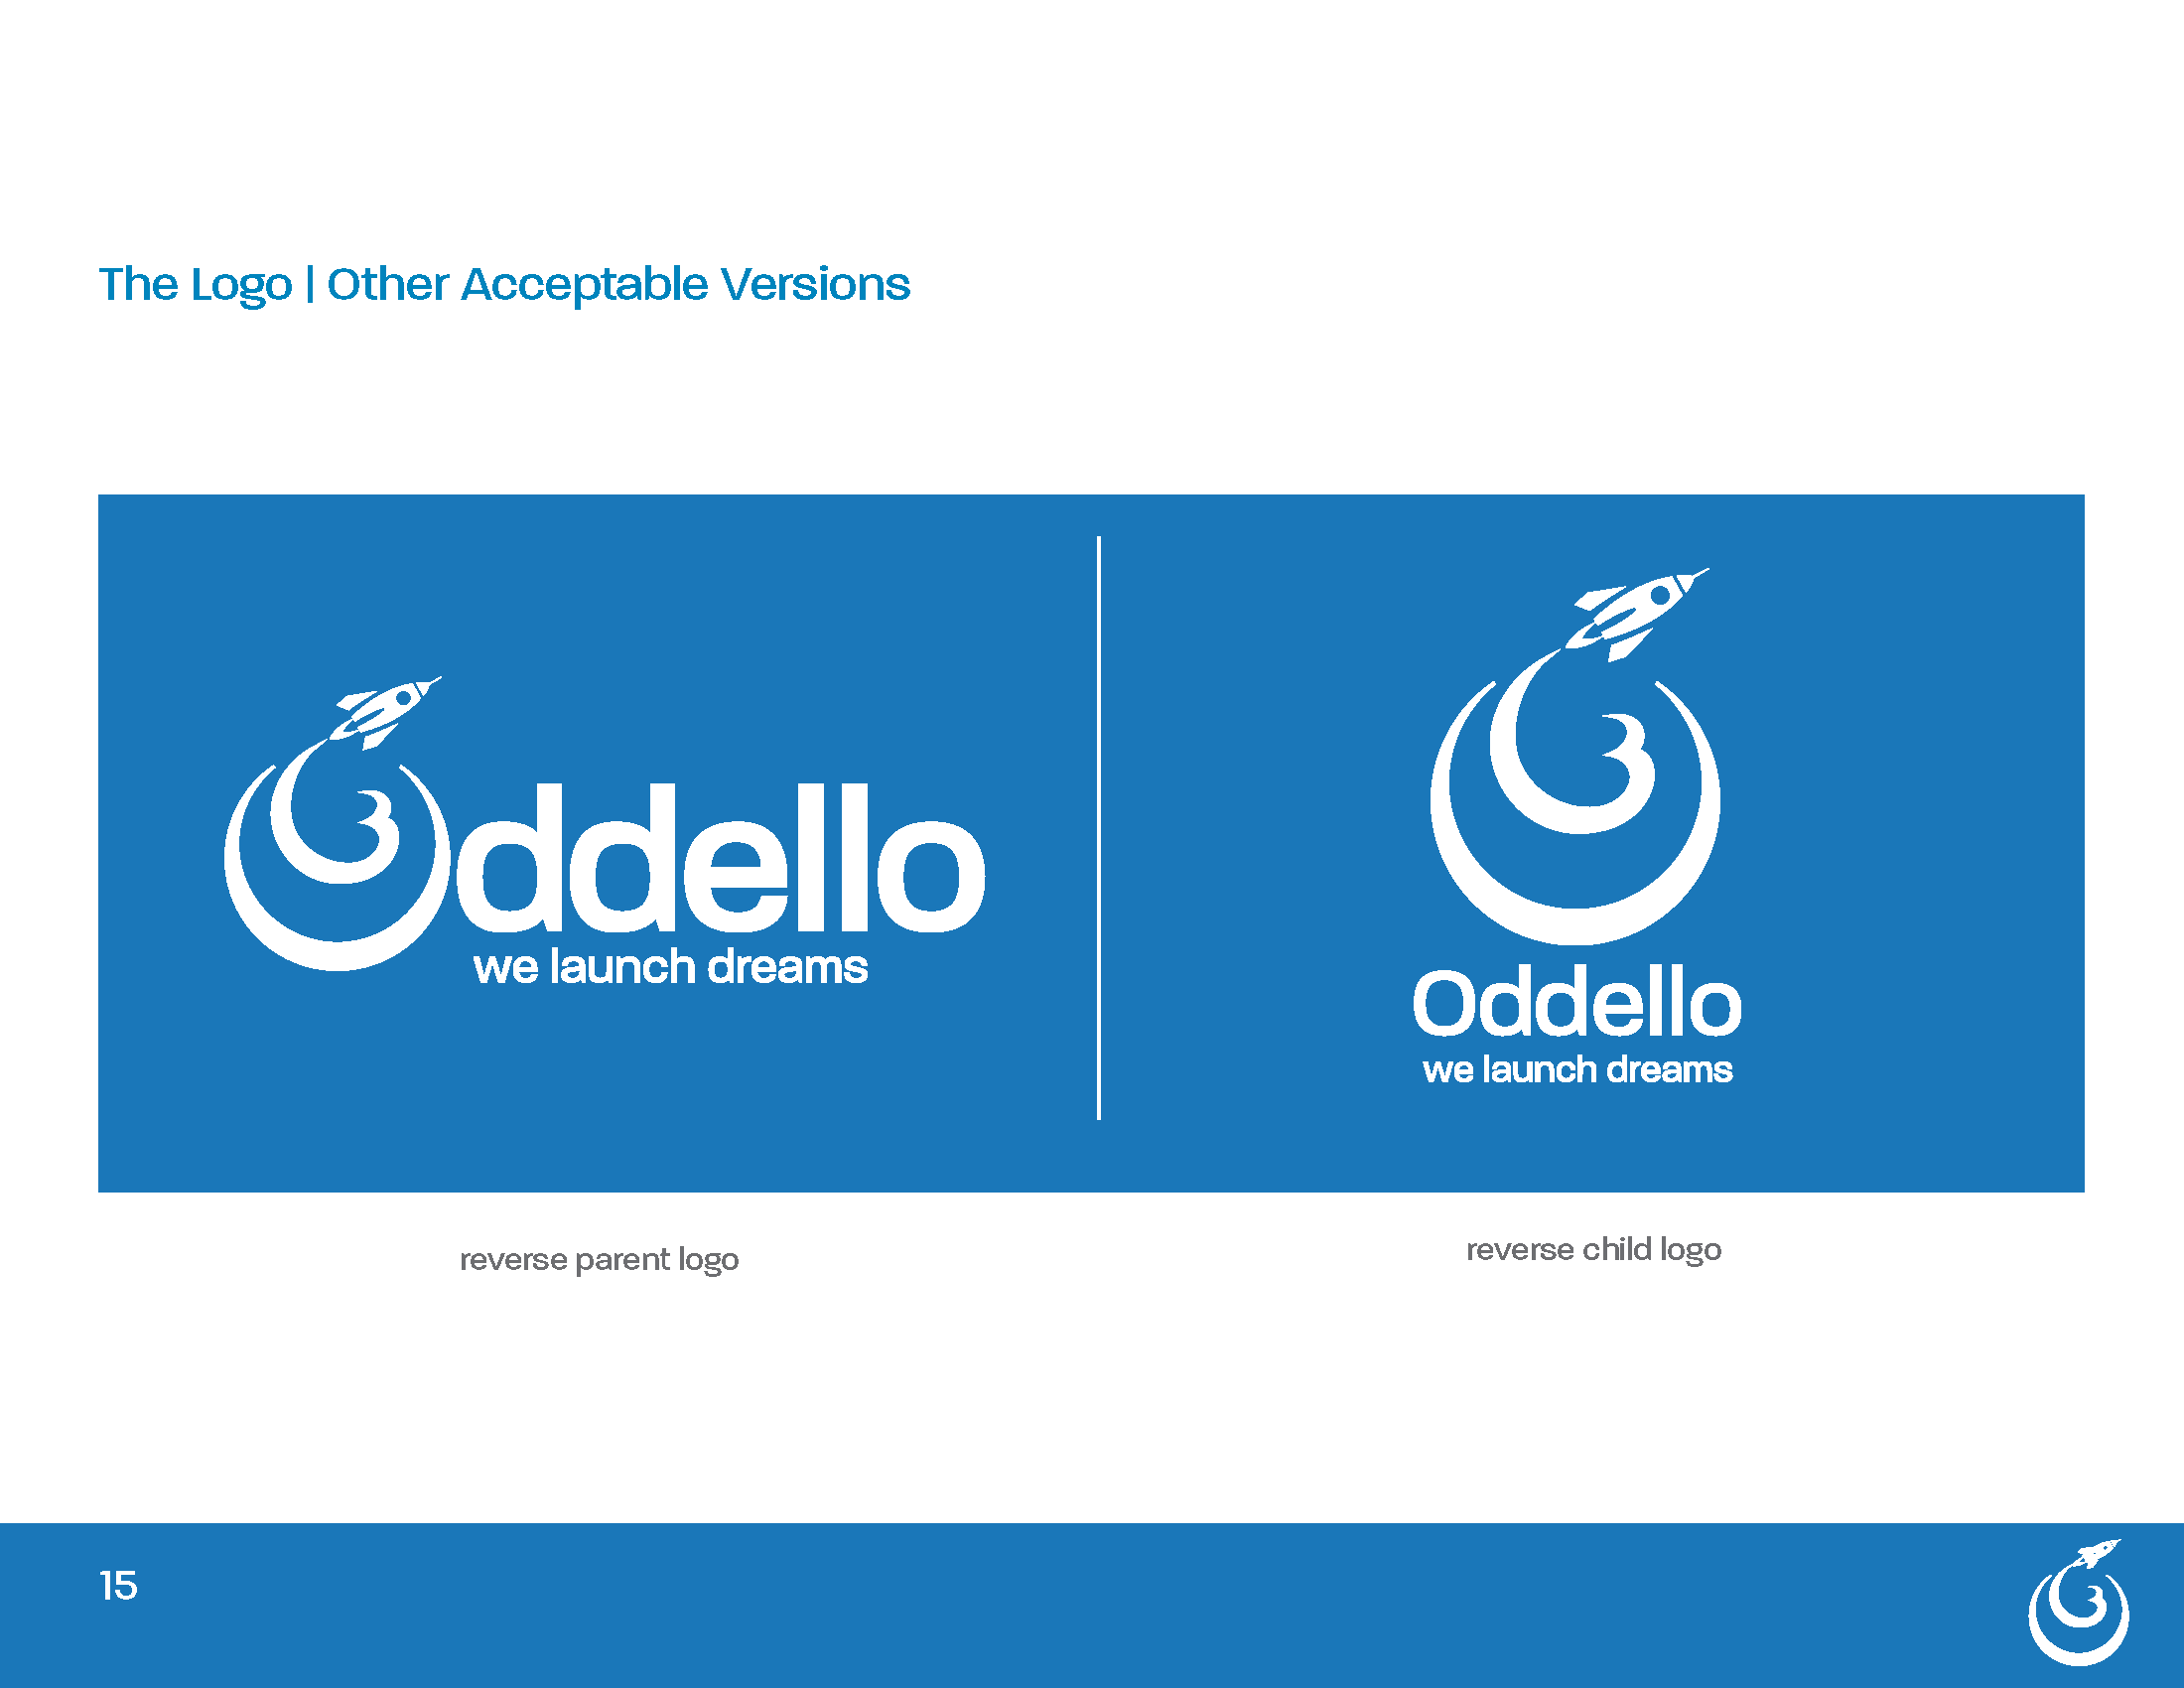 Oddello Brand Guide (1)_Page_5.png